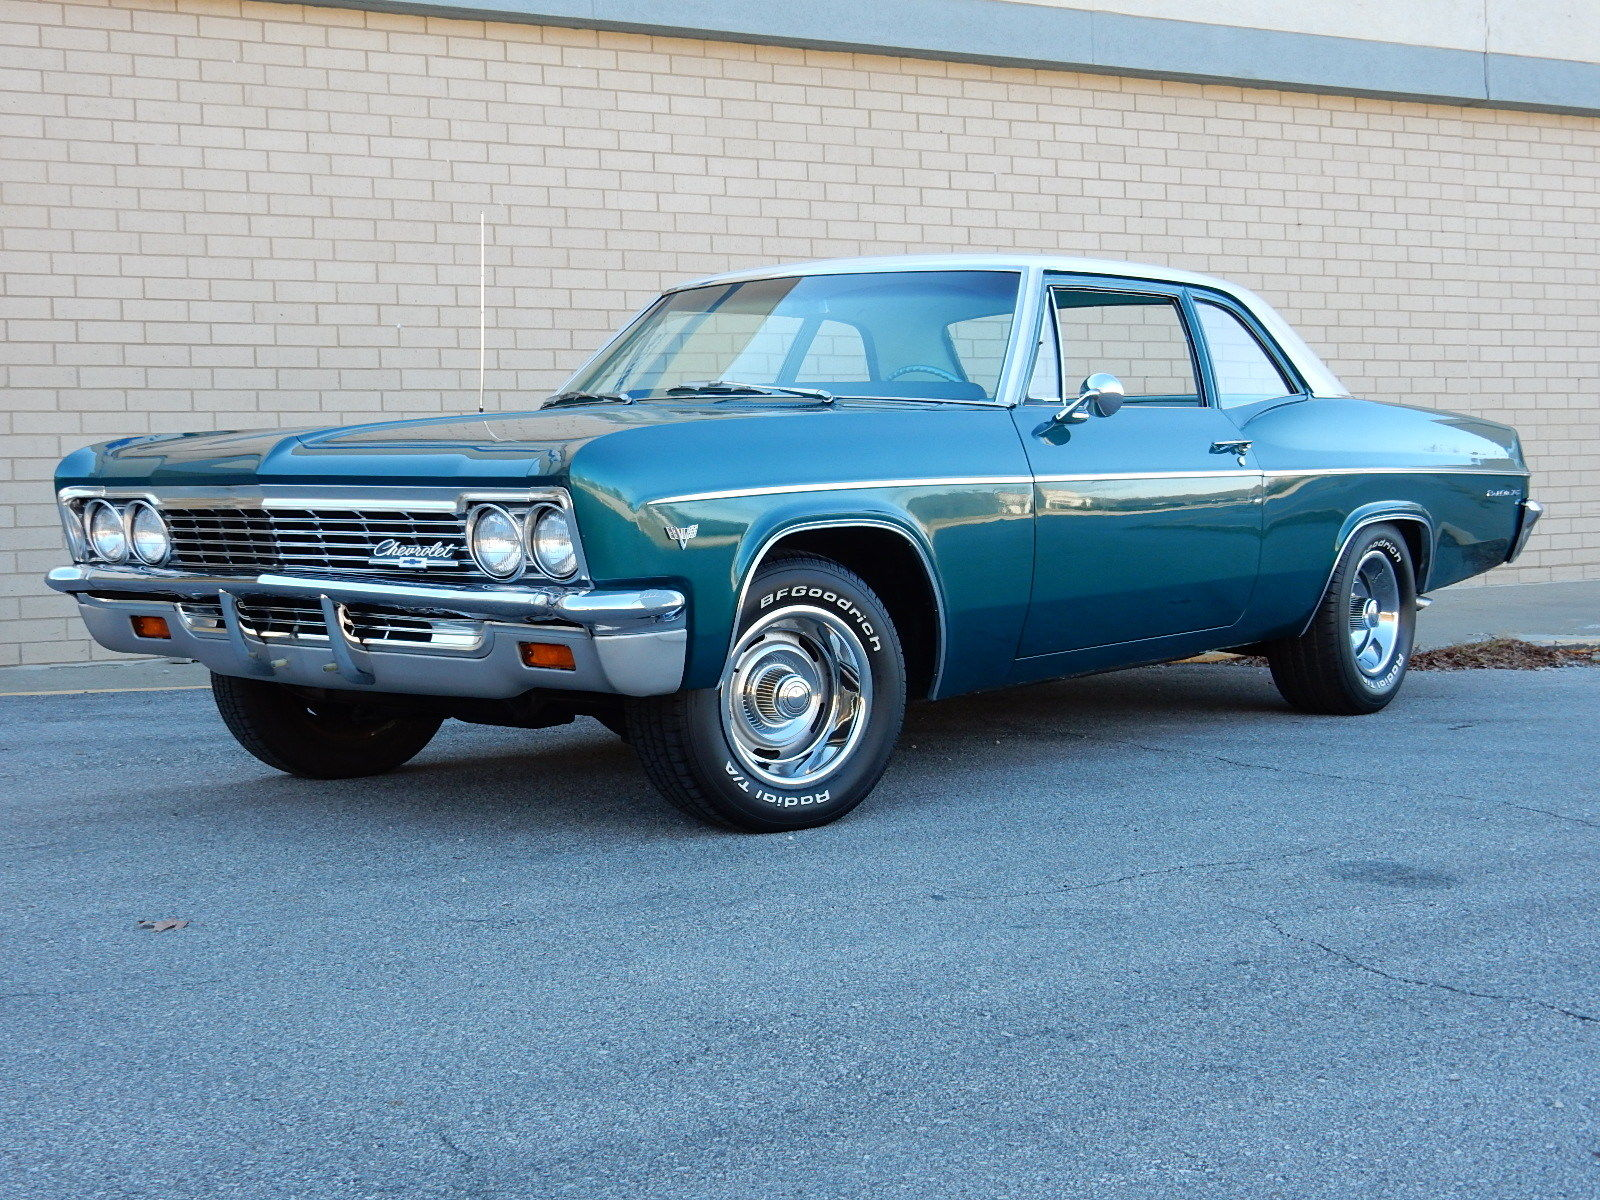 Beautiful 1966 Chevrolet Bel Air Two Door Post Coupe 283 Super Chevy For Sale 150 210